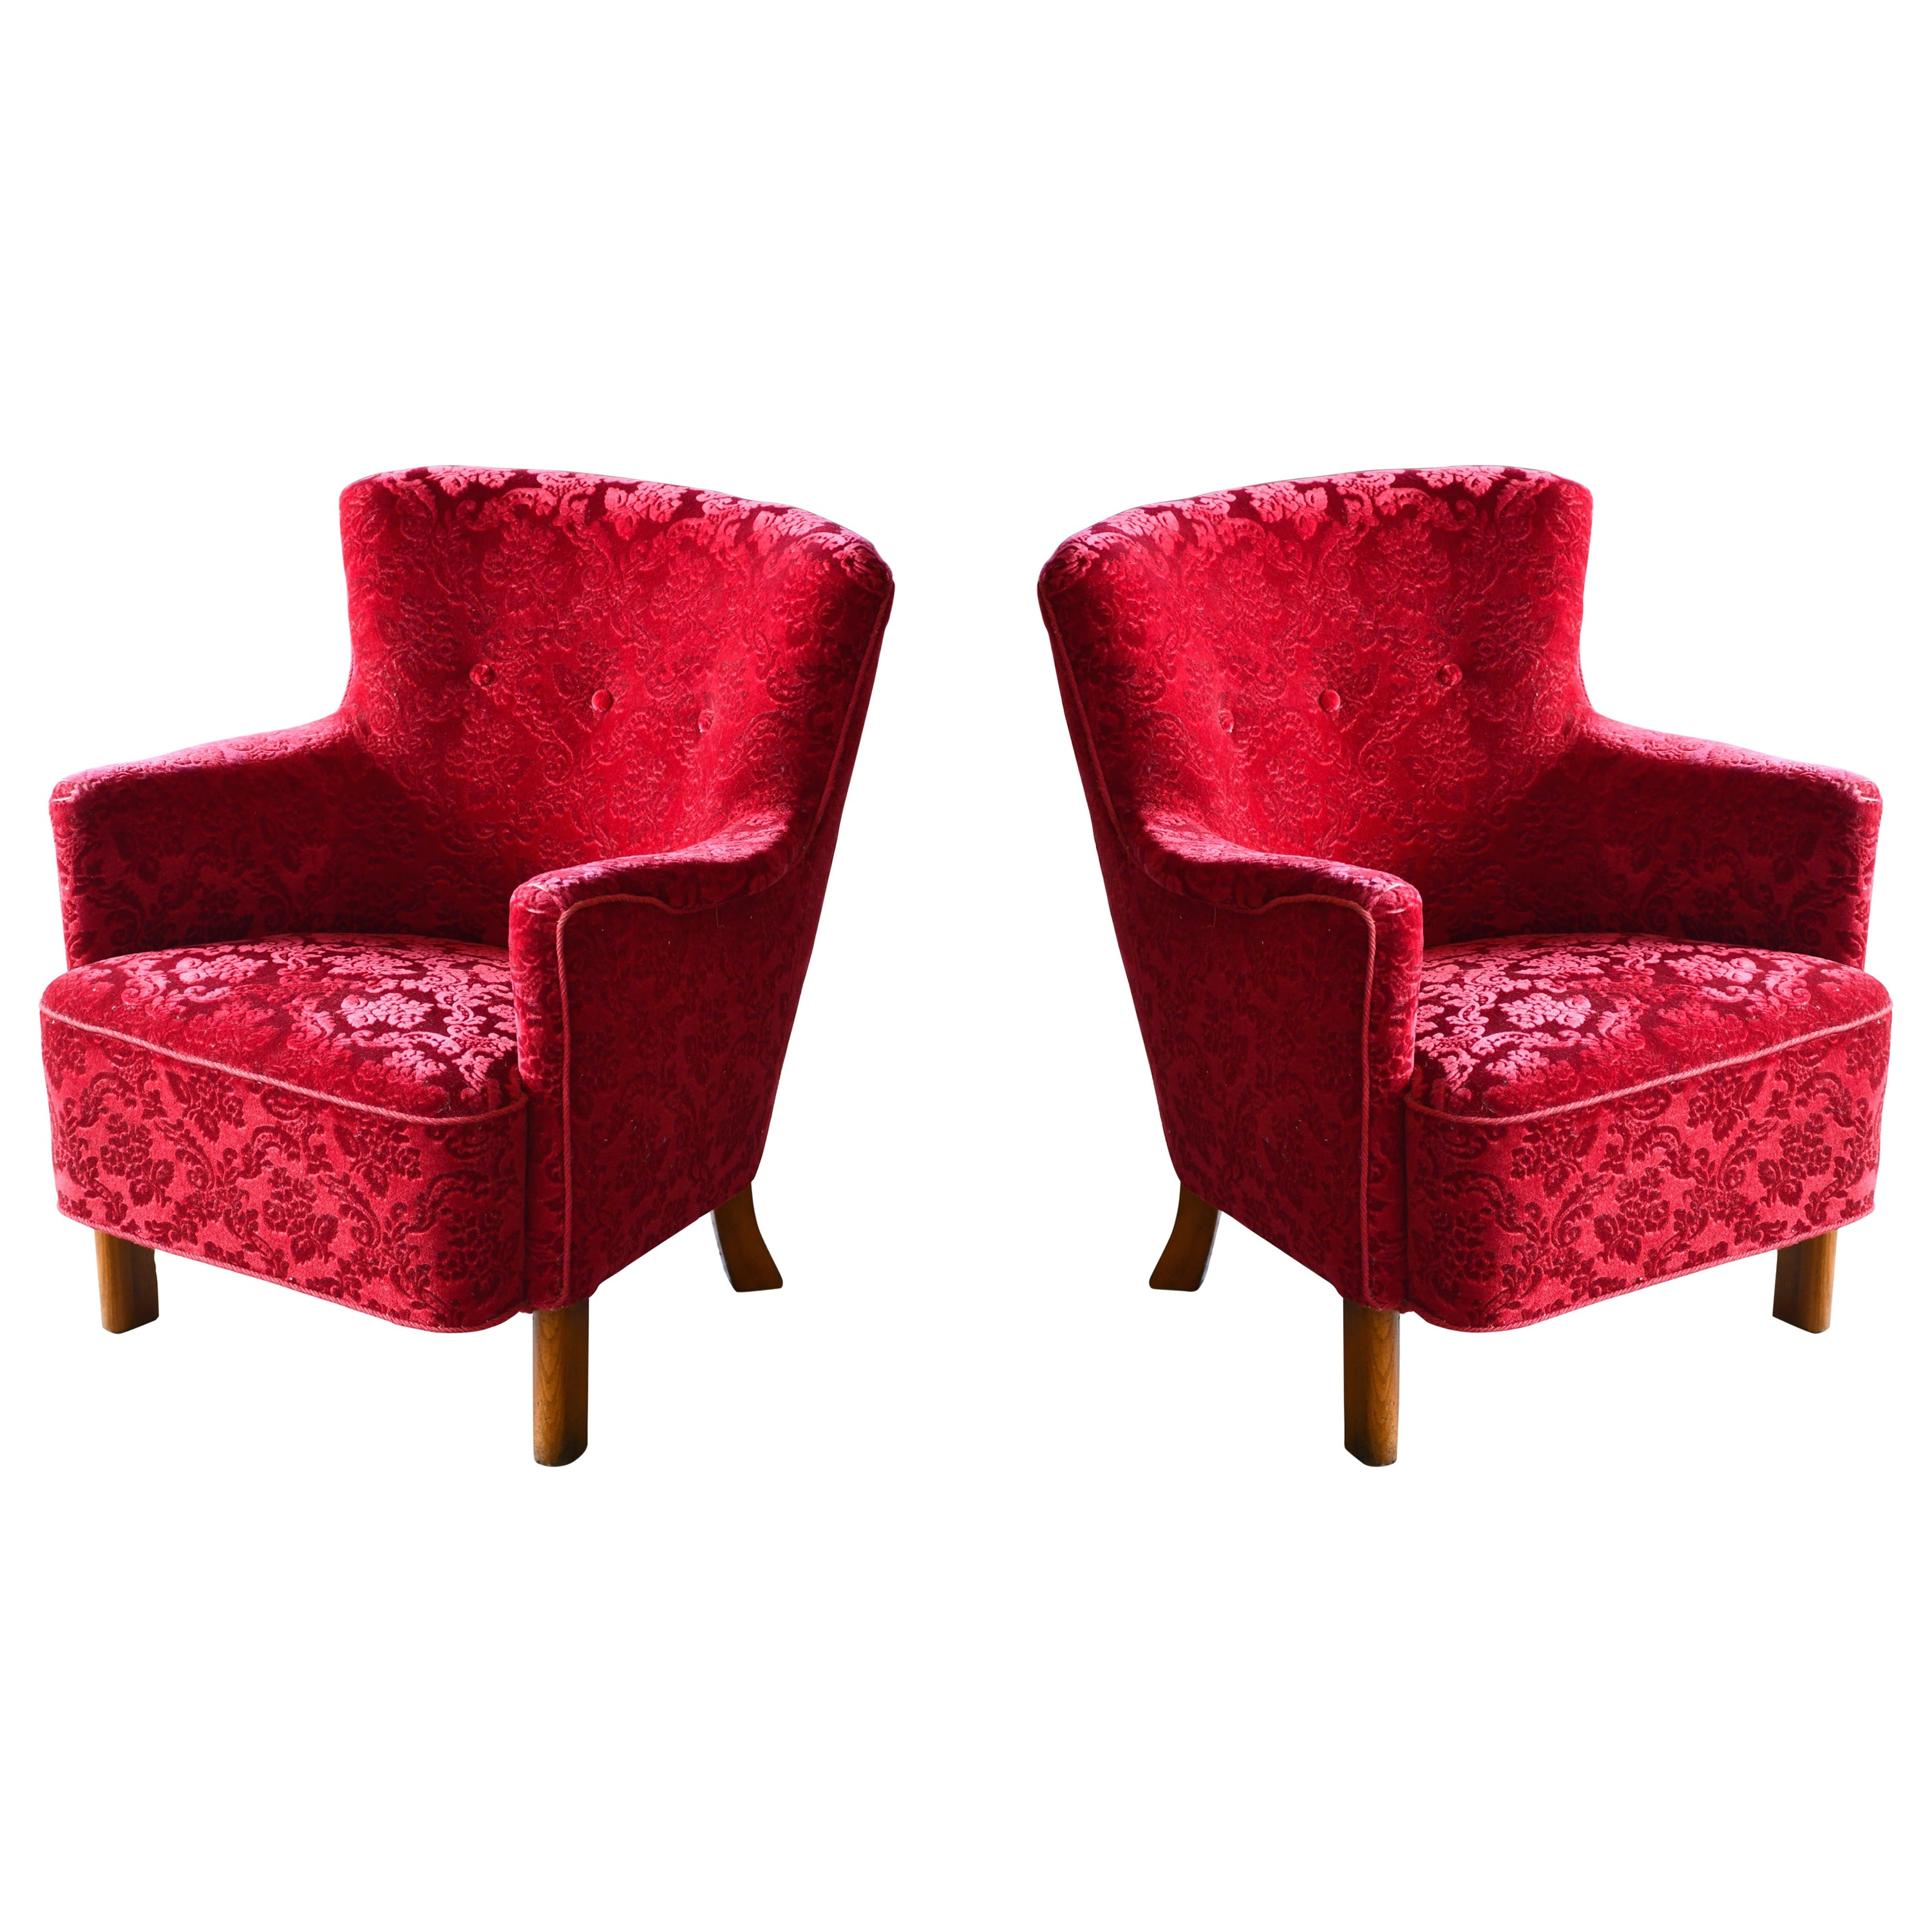 Danish 1940s Fritz Hansen Style Small Scale Lounge Chairs in Red Mohair